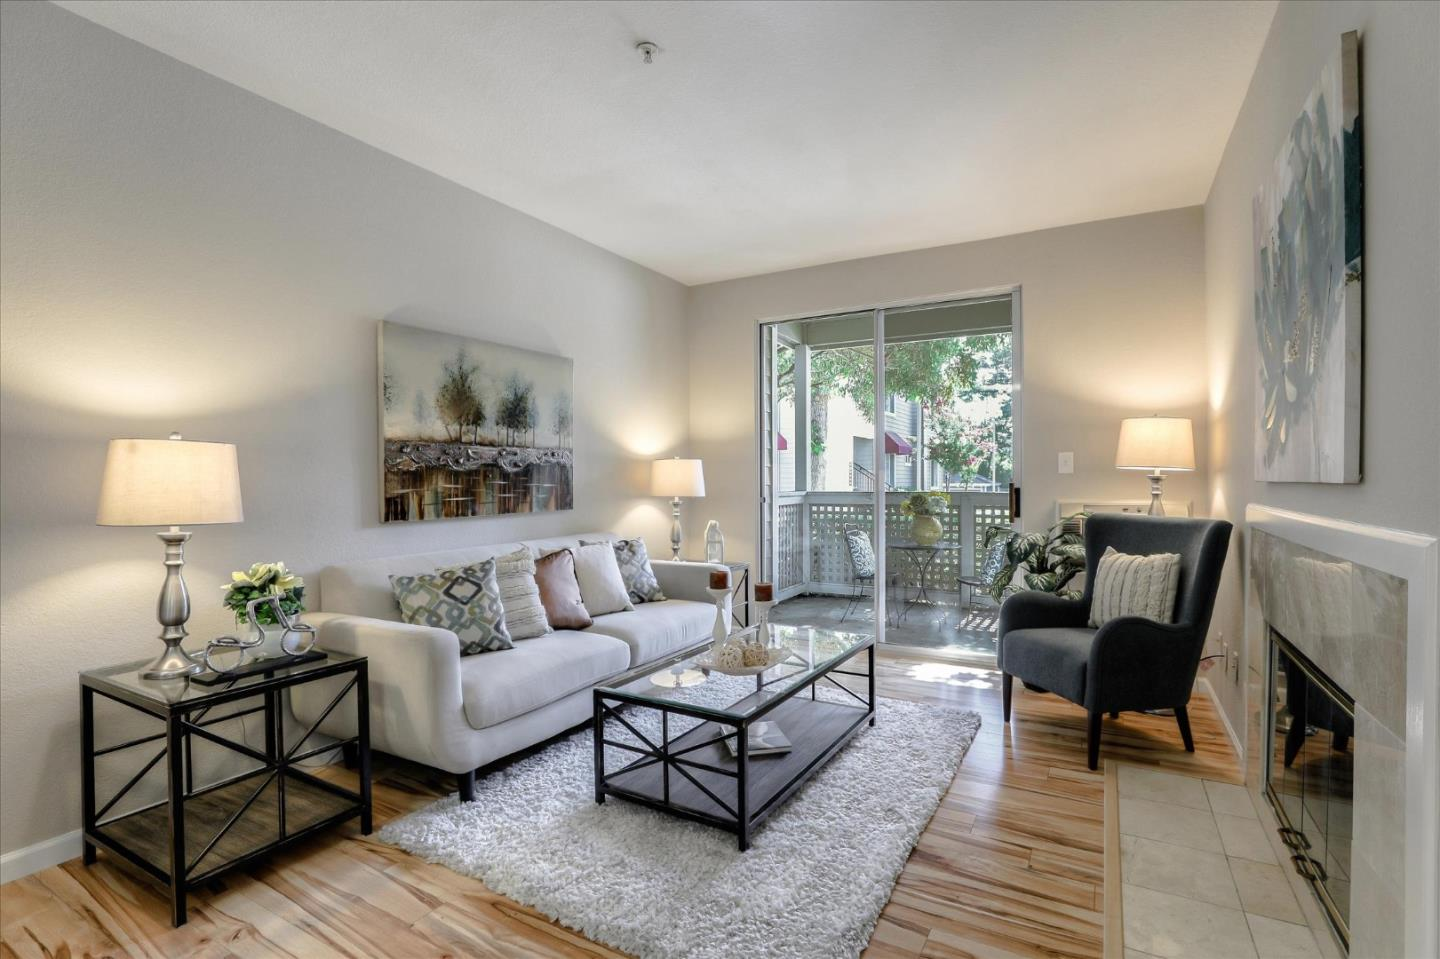 Fabulous ground level condo in the desirable Santa Elena community in the heart of Silicon Valley! Features include 2 bedrooms; 2 full baths; living area with fireplace; kitchen with an abundance of cabinetry, pantry, stainless steel appliances and open to the living area and dining area; master suite with dual closets, new carpet, mirrored closet doors and updated master bath with dual sink vanity and granite counters; updated hall bath; laminate flooring; freshly painted interior; private patio with additional storage; underground secure parking and additional storage unit. Community offers pool, spa & clubhouse. Great commute location close to Central Expressway and Highways 85, 101 & 237 and close to major employers including Apple, Google, LinkedIn and more!